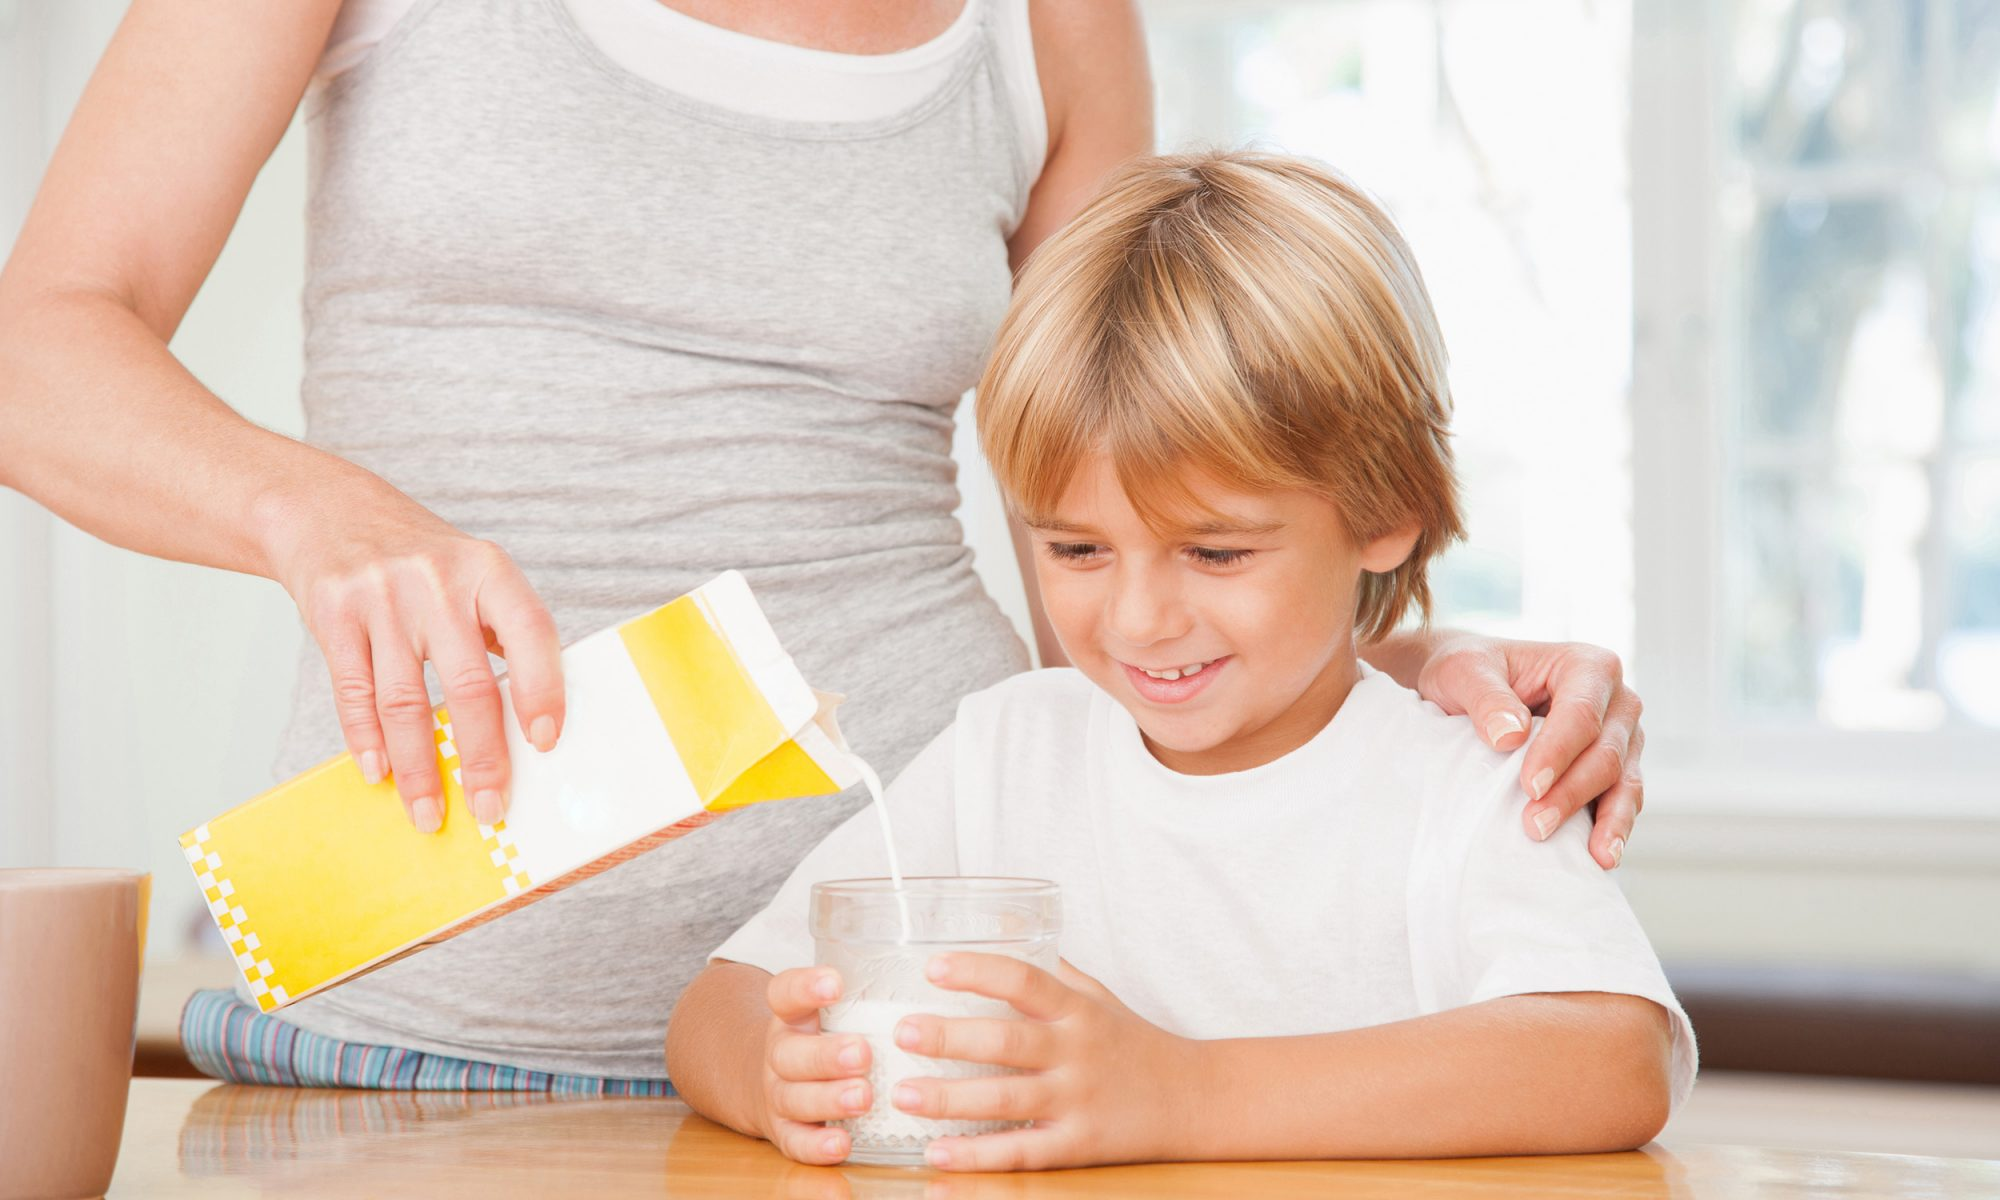 EC: Whole Milk Might Make Your Kid Healthier